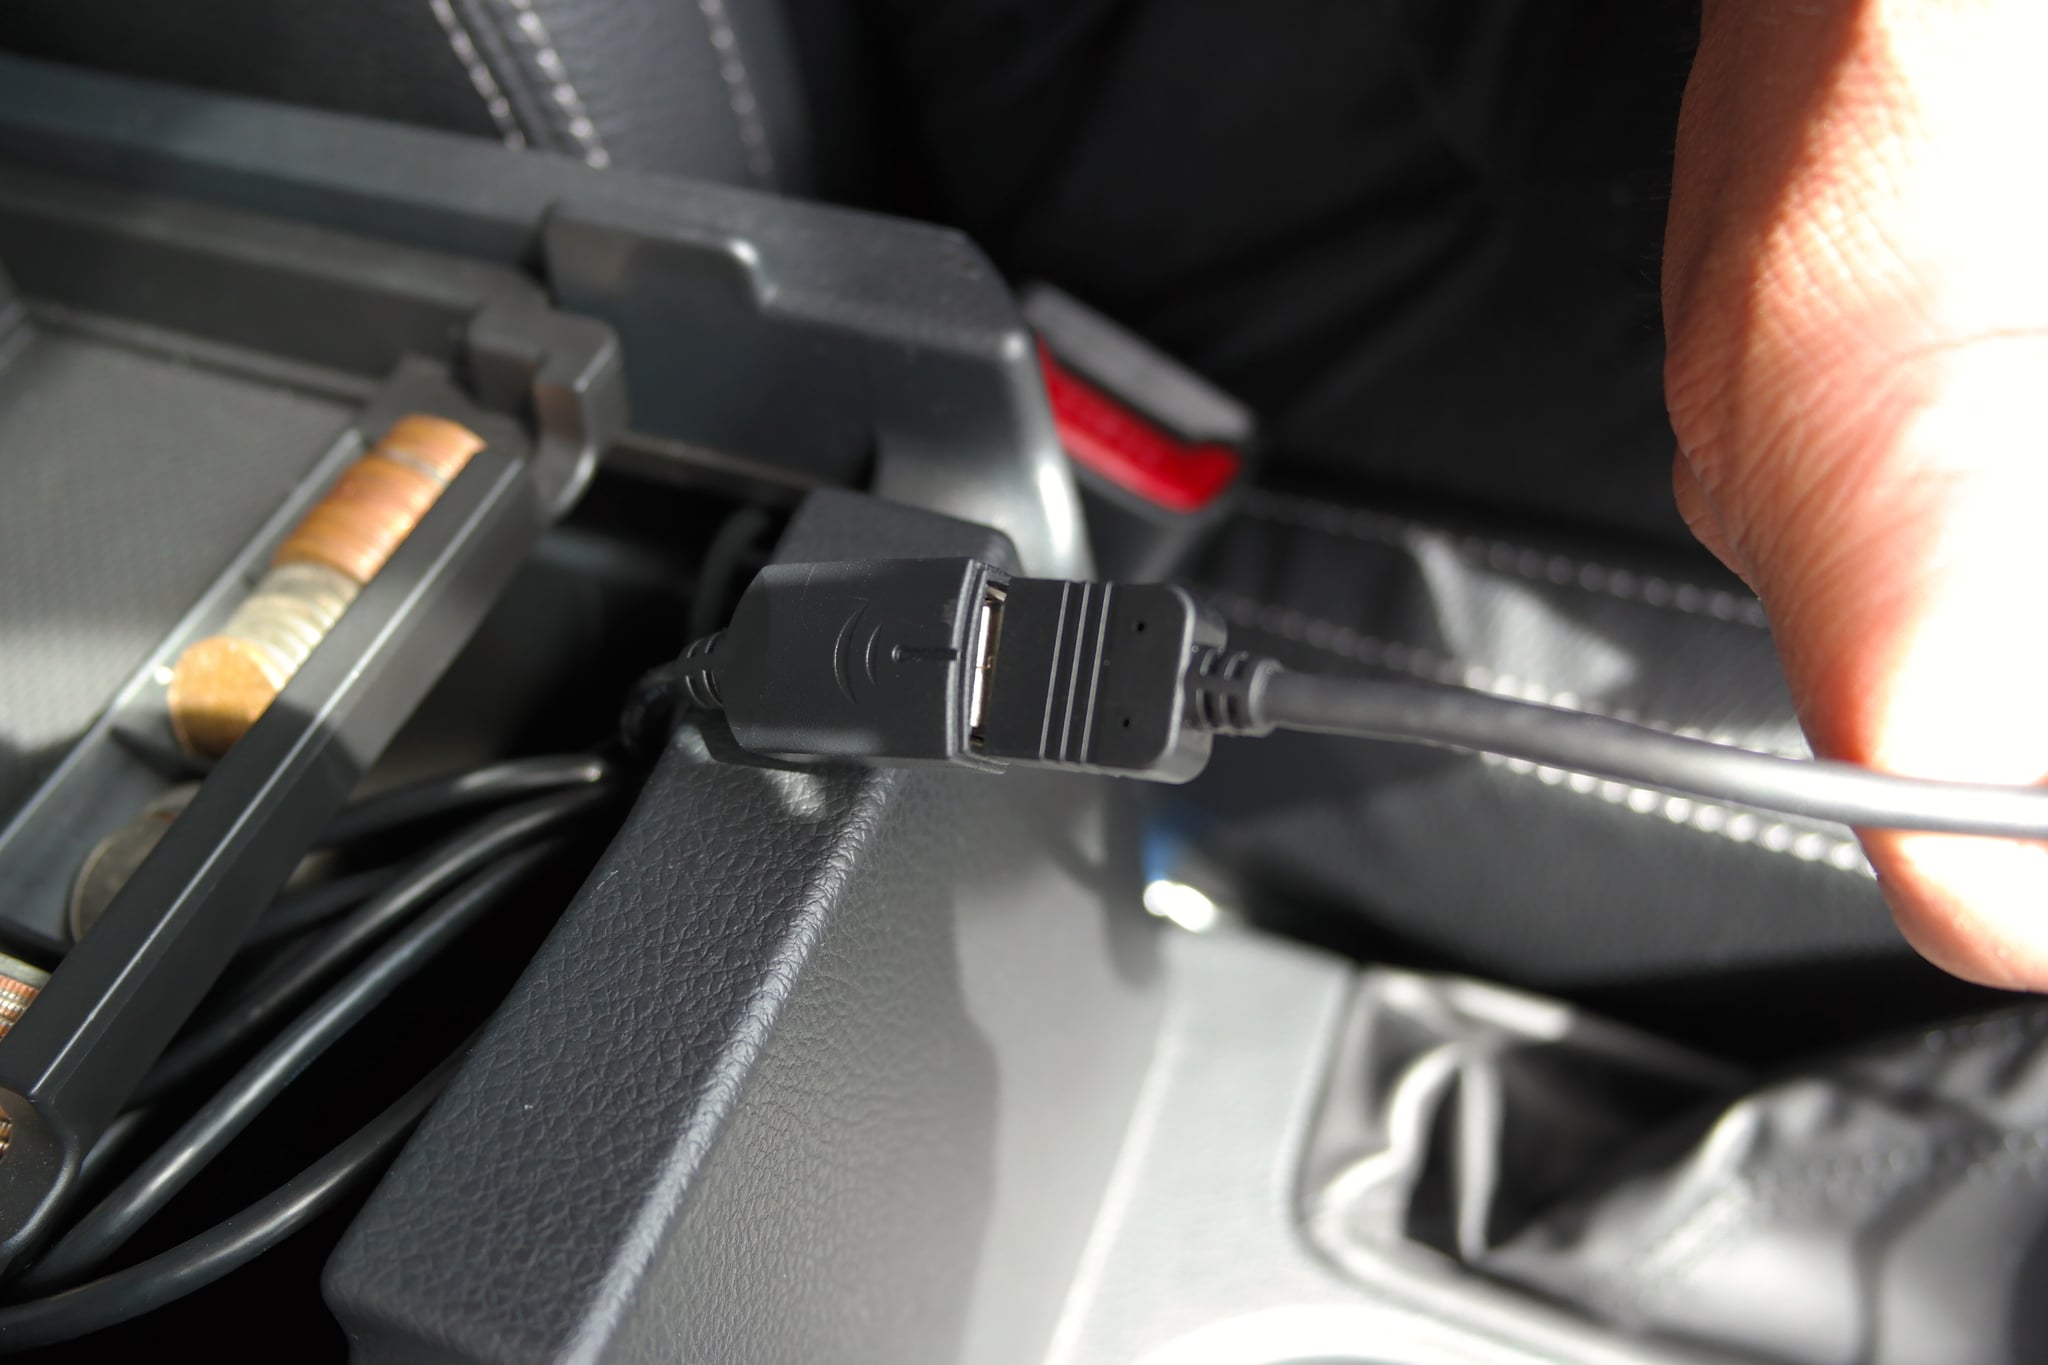 This USB cable is installed into the center console (middle compartment).